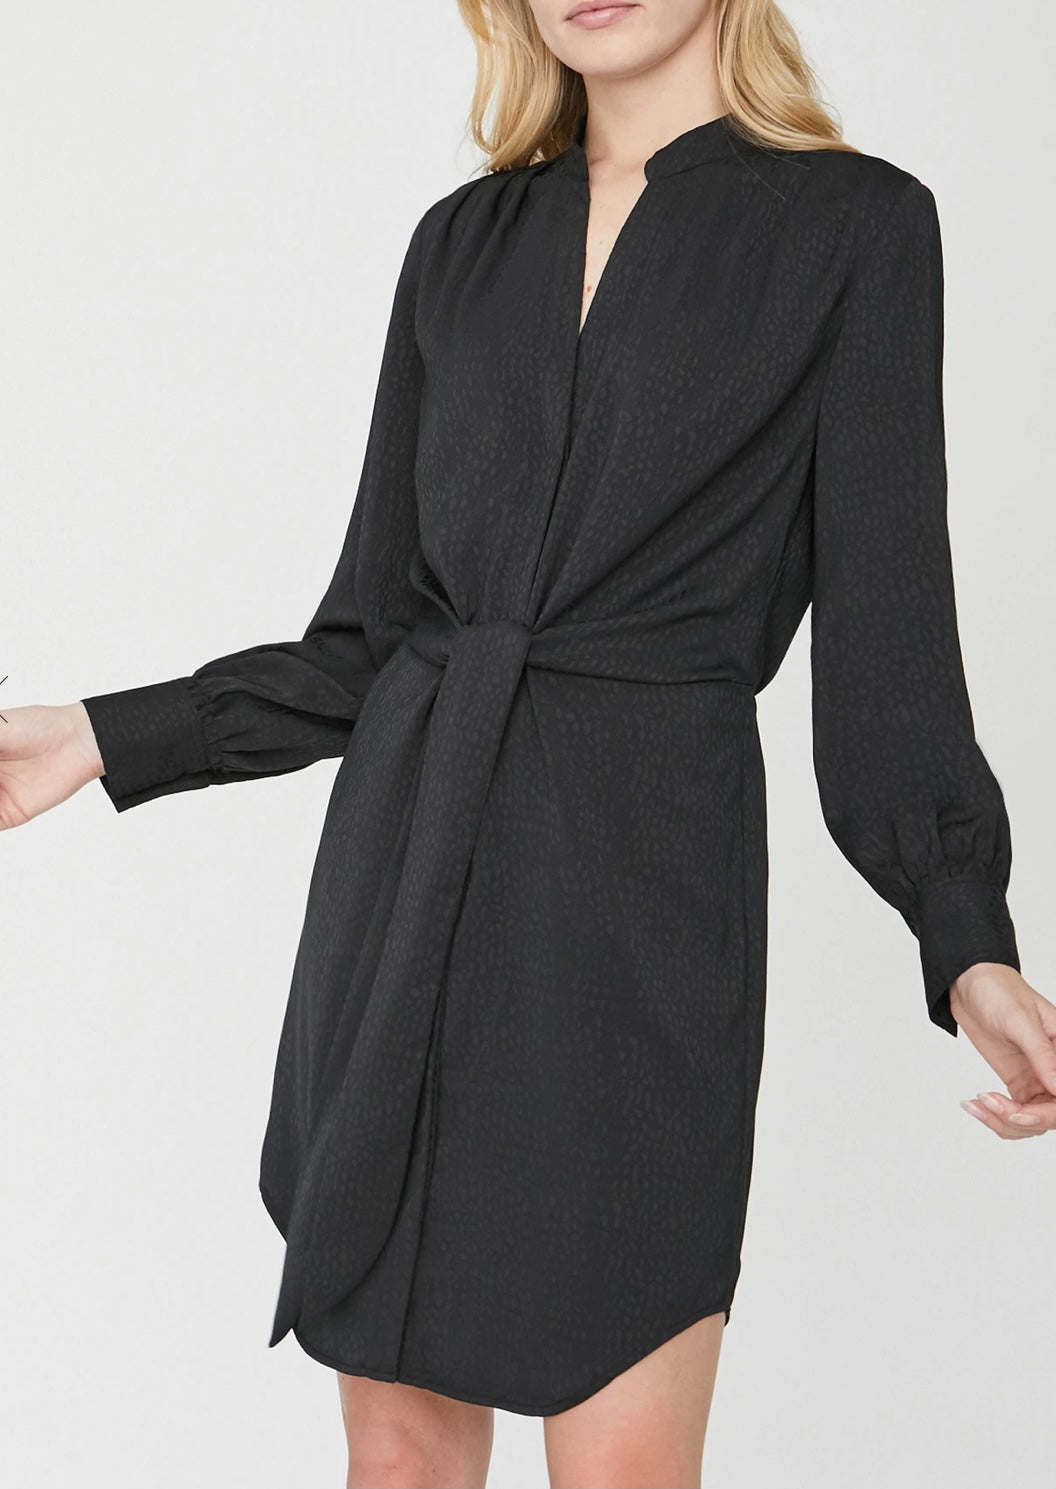 Denise Shirt Dress